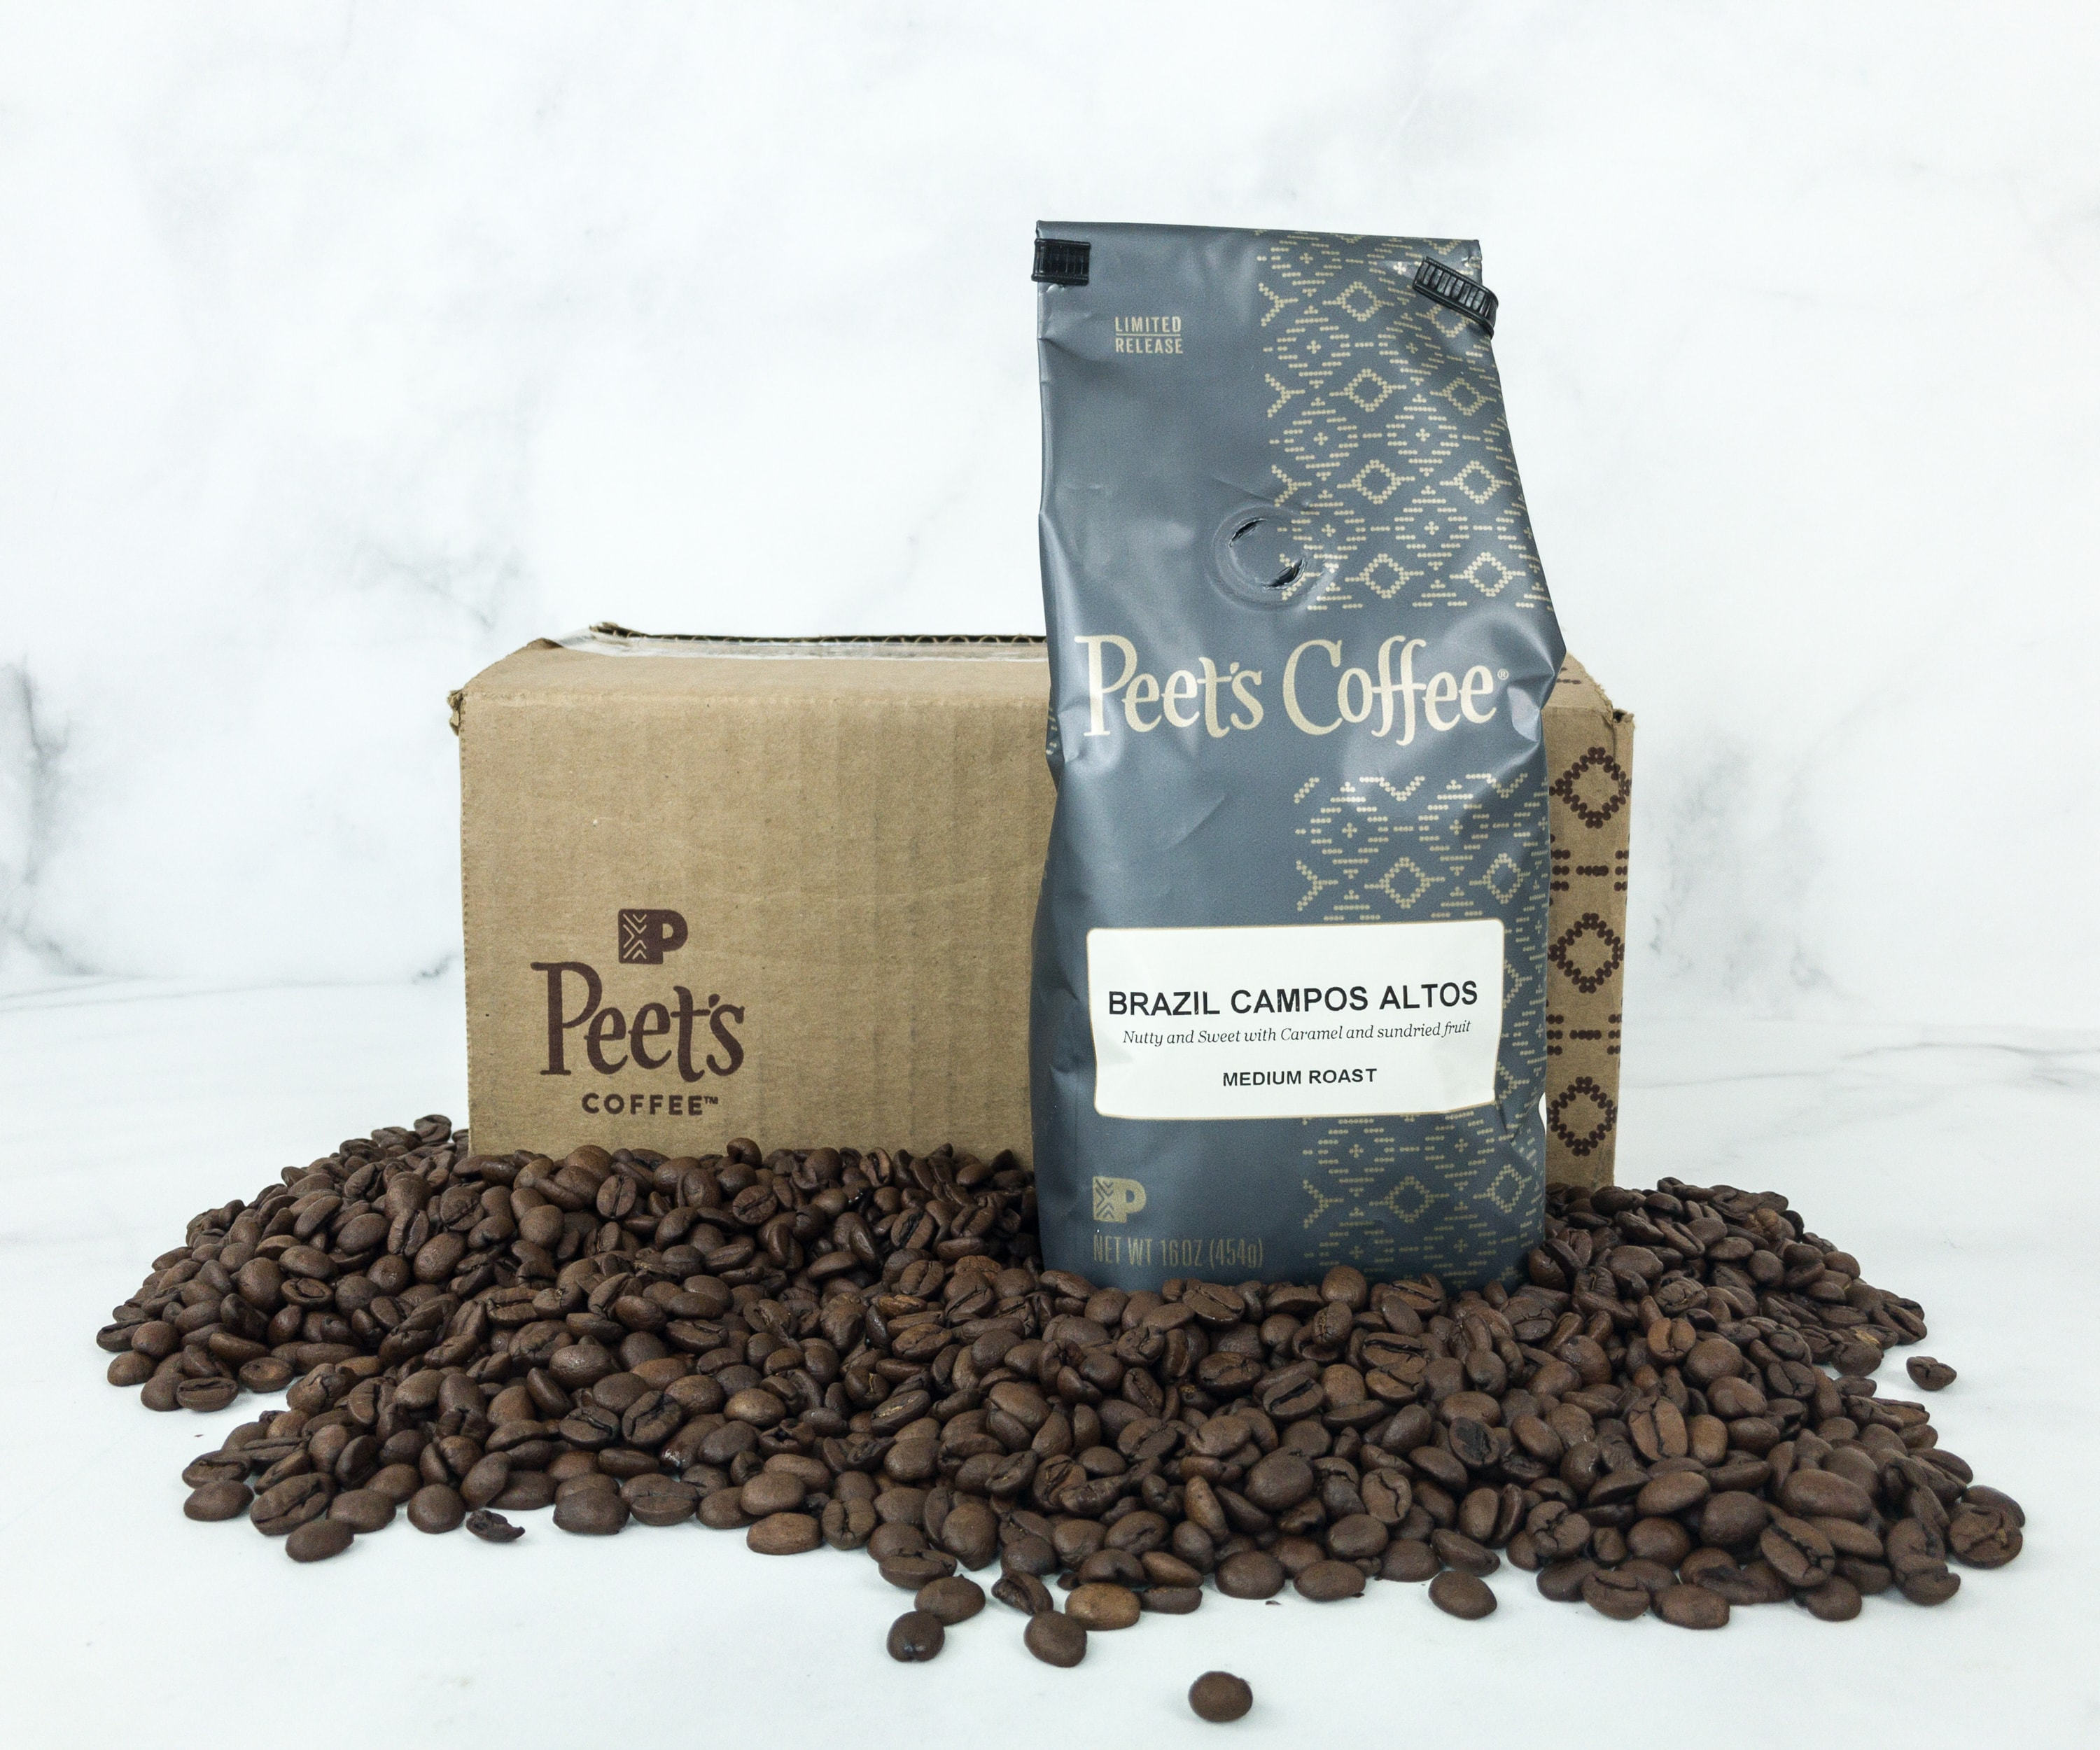 Peet's Coffee Explorer Series January 2019 Subscription Box Review